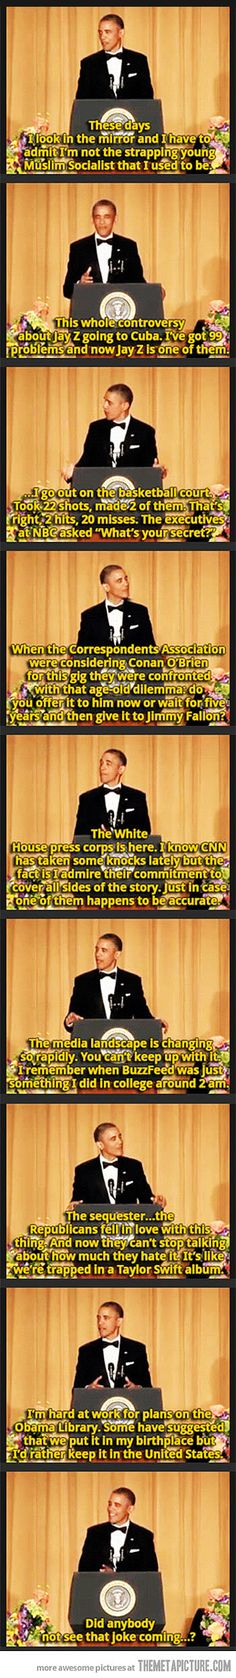 Obama's one-liners at White House Correspondents Dinner…